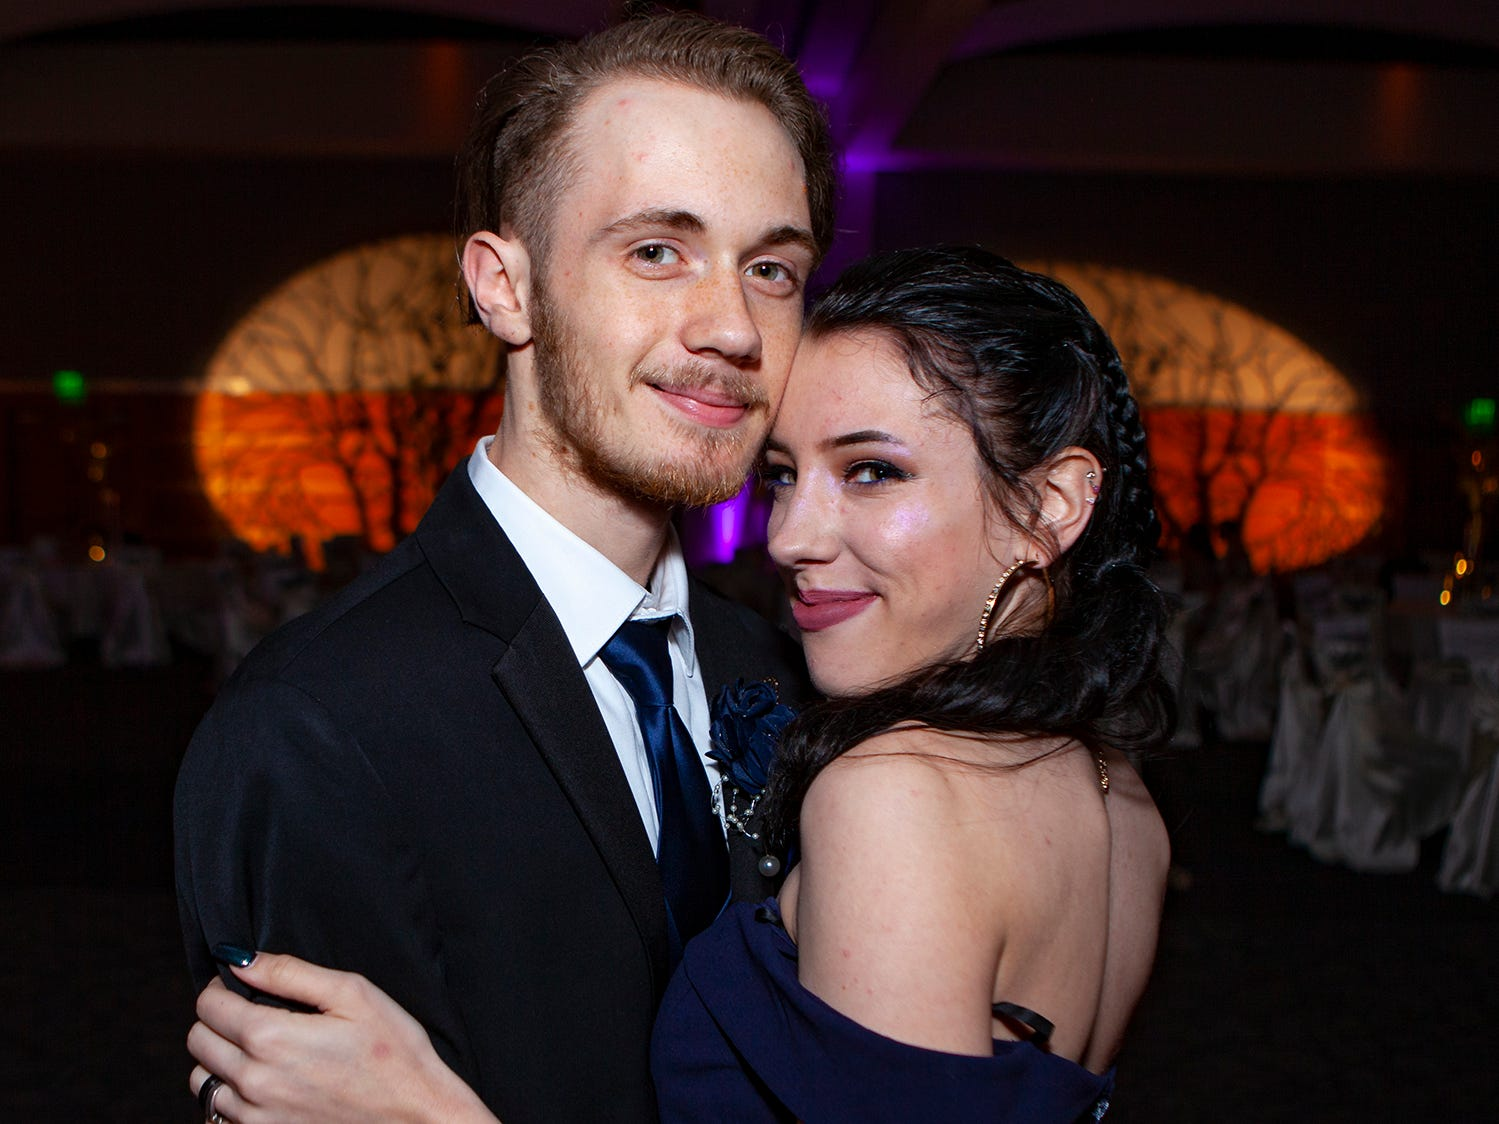 Bradley Kistner and Destiny Webber at La Vergne High's prom, held Saturday, May 4, 2019 at MTSU's Student Union Building.